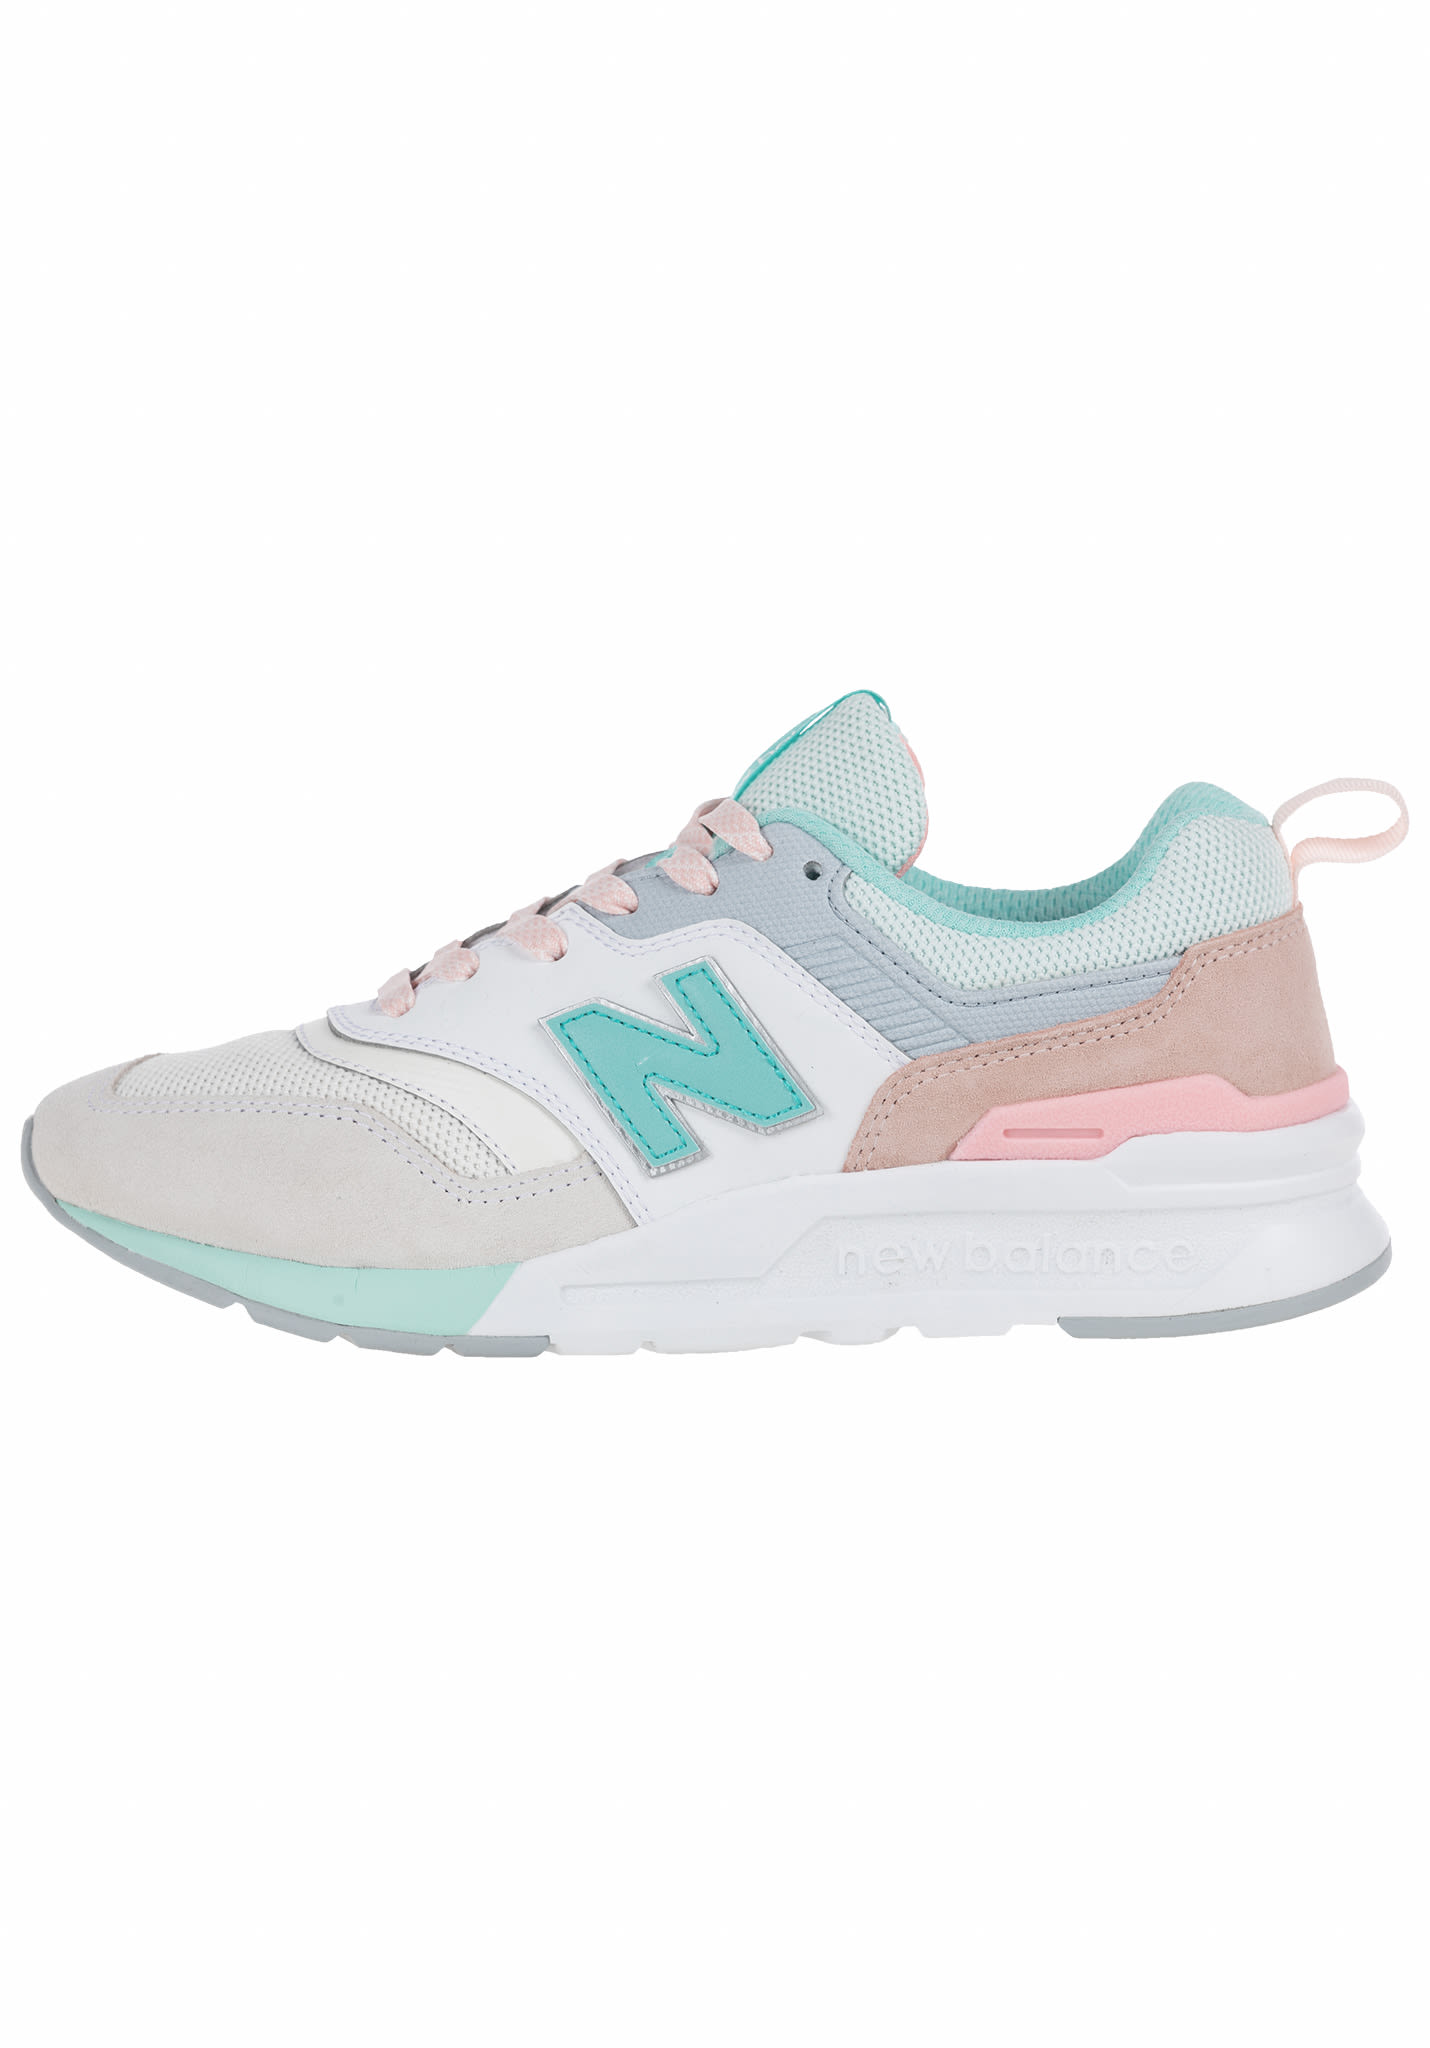 meilleur site web 20ade 76225 NEW BALANCE CW997 B - Sneakers for Women - White